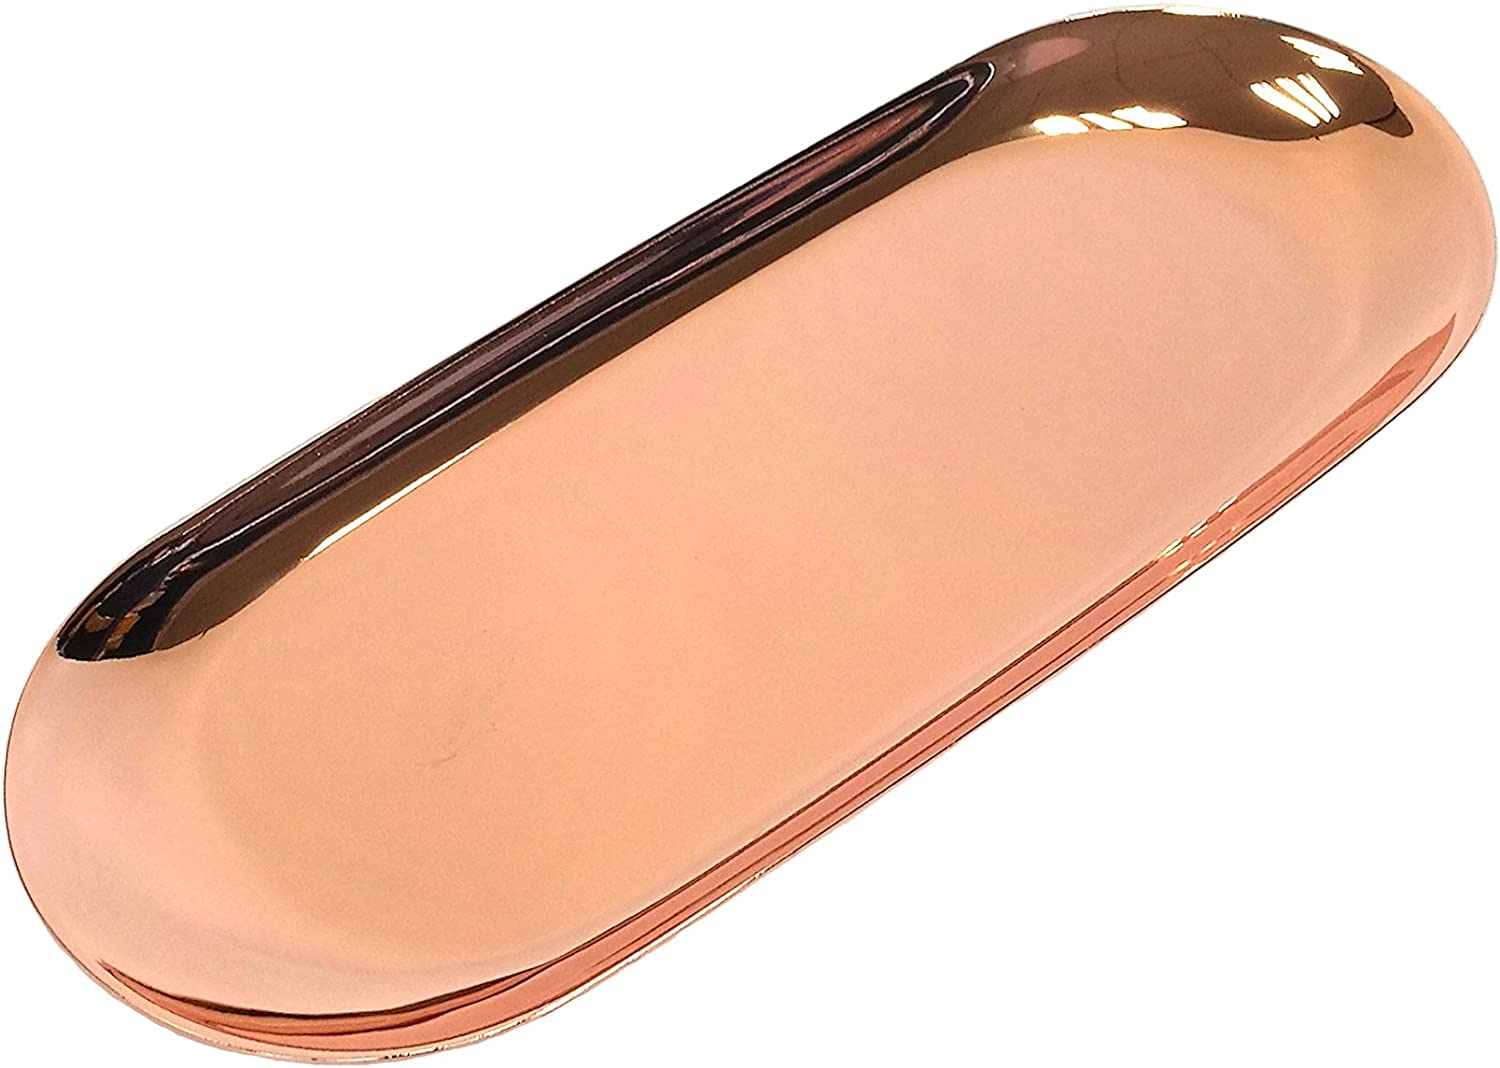 Easy 99 Metal Storage Tray Fruit Plate Small Items Cosmetics Jewelry Display Tray, Rose Gold